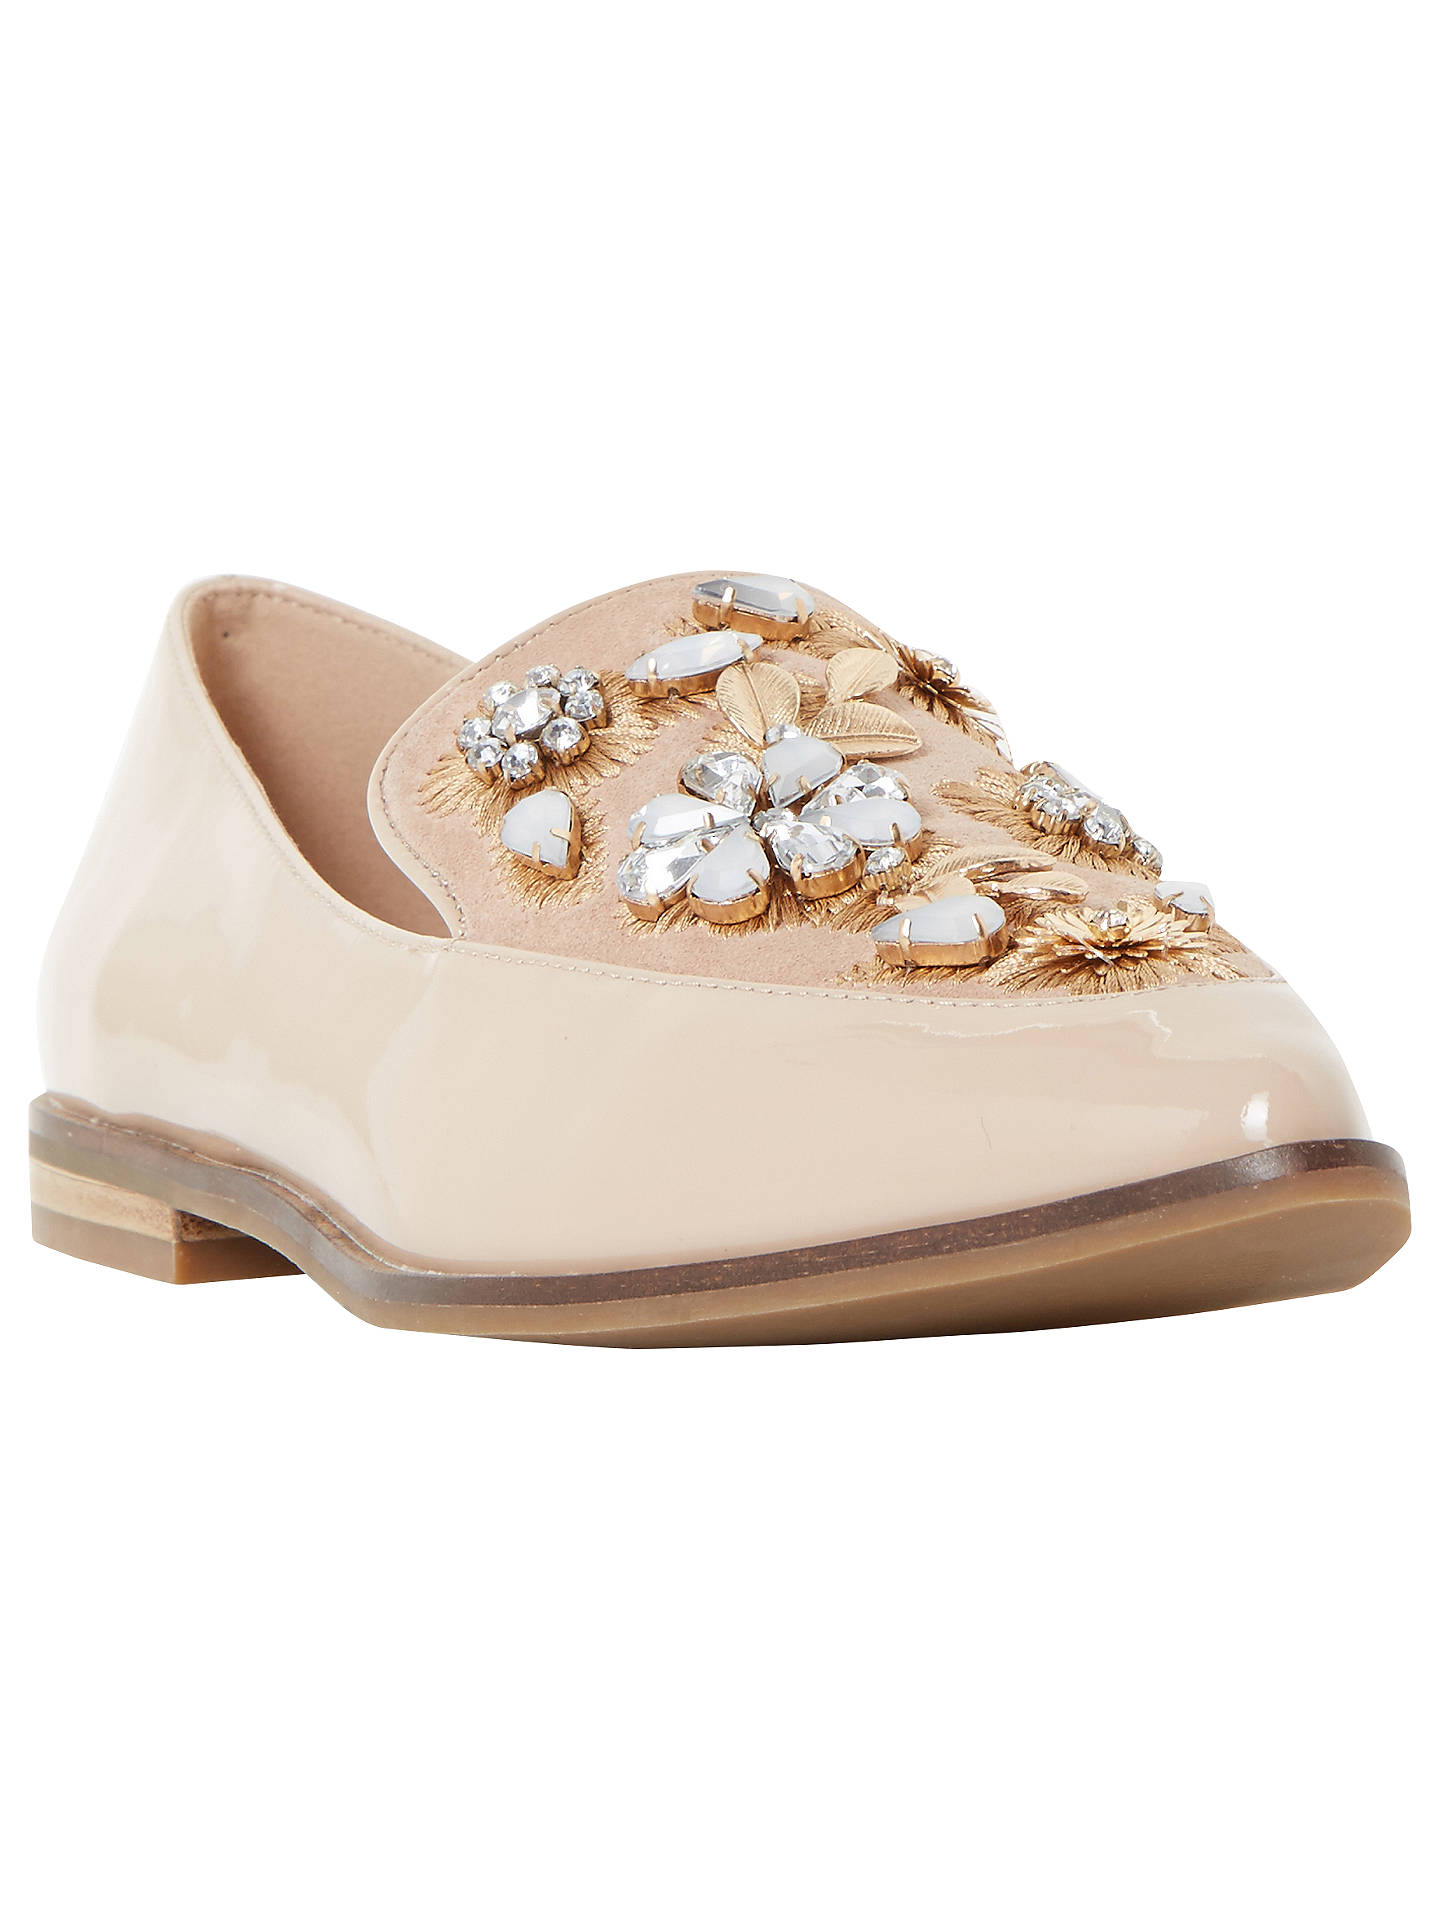 1cc2faae8b Buy Dune Gift Embellished Pointed Toe Loafers, Nude Leather, 3 Online at  johnlewis.